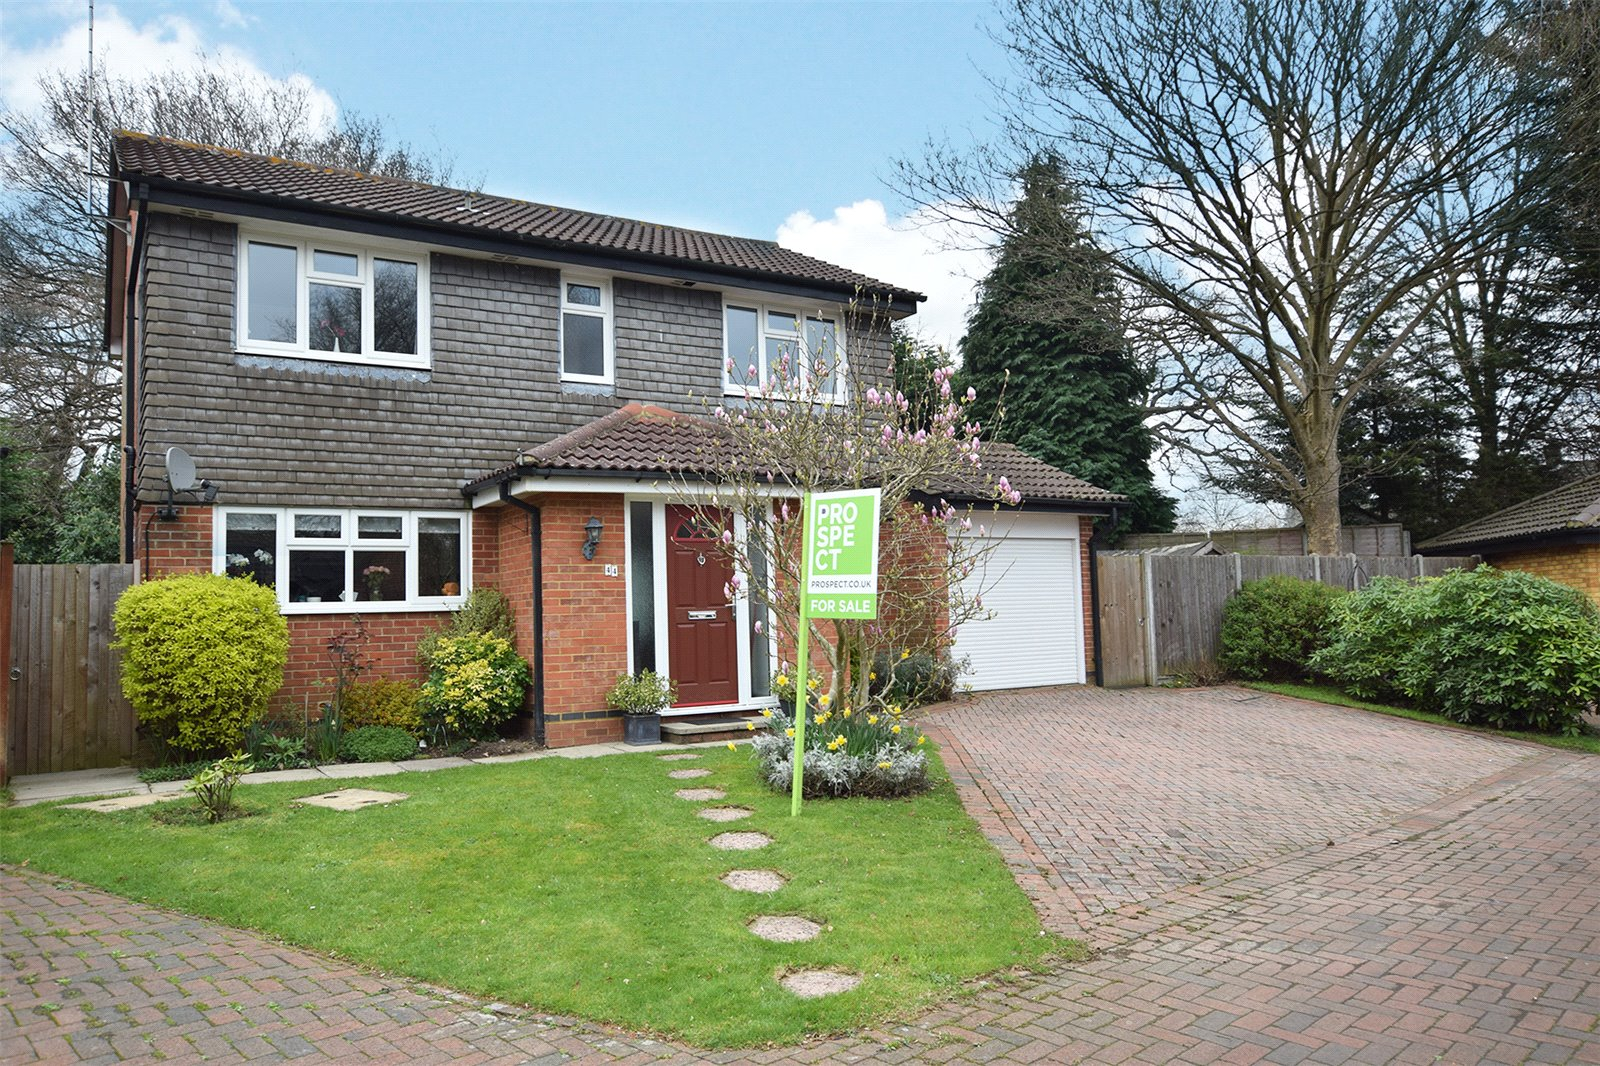 4 Bedrooms Detached House for sale in Aldworth Close, Bracknell, Berkshire, RG12